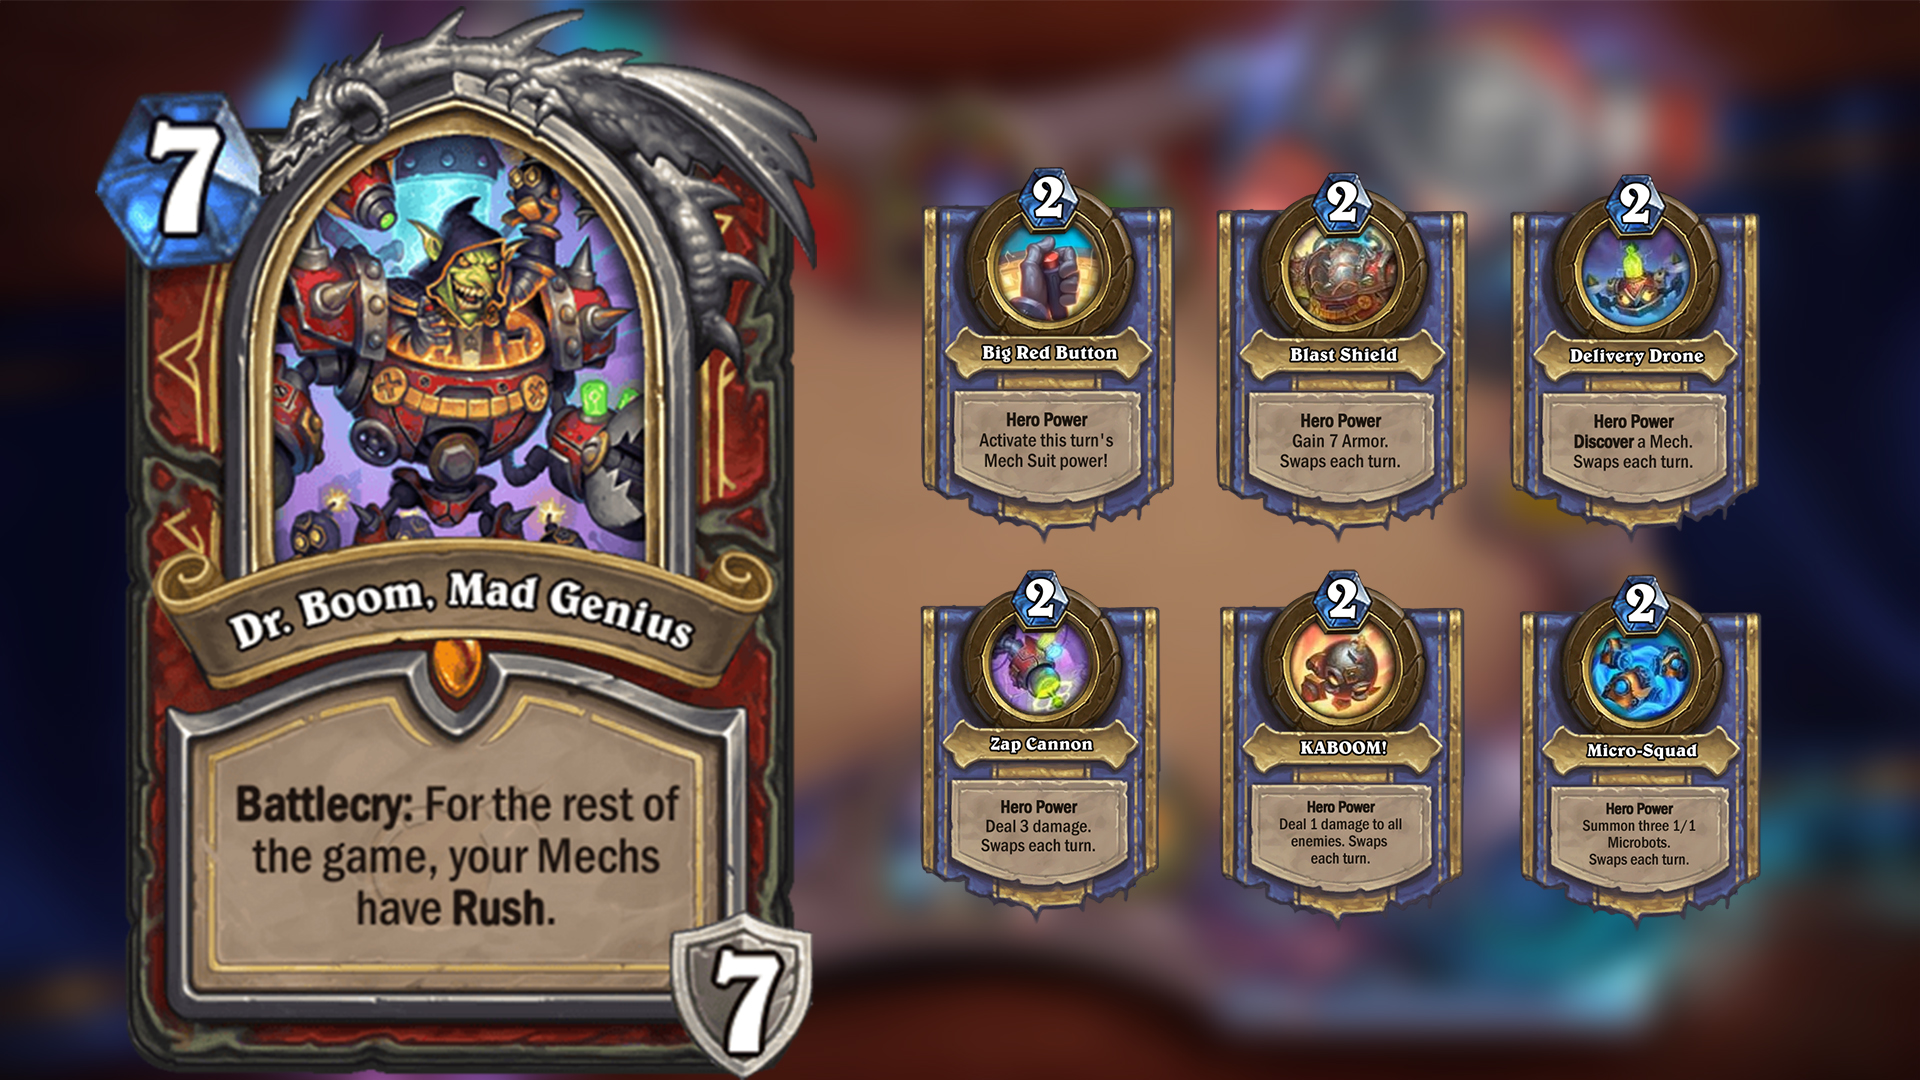 This Is Not Worst Case Scenario >> Hearthstone: The Boomsday Project - Our Most Anticipated Cards